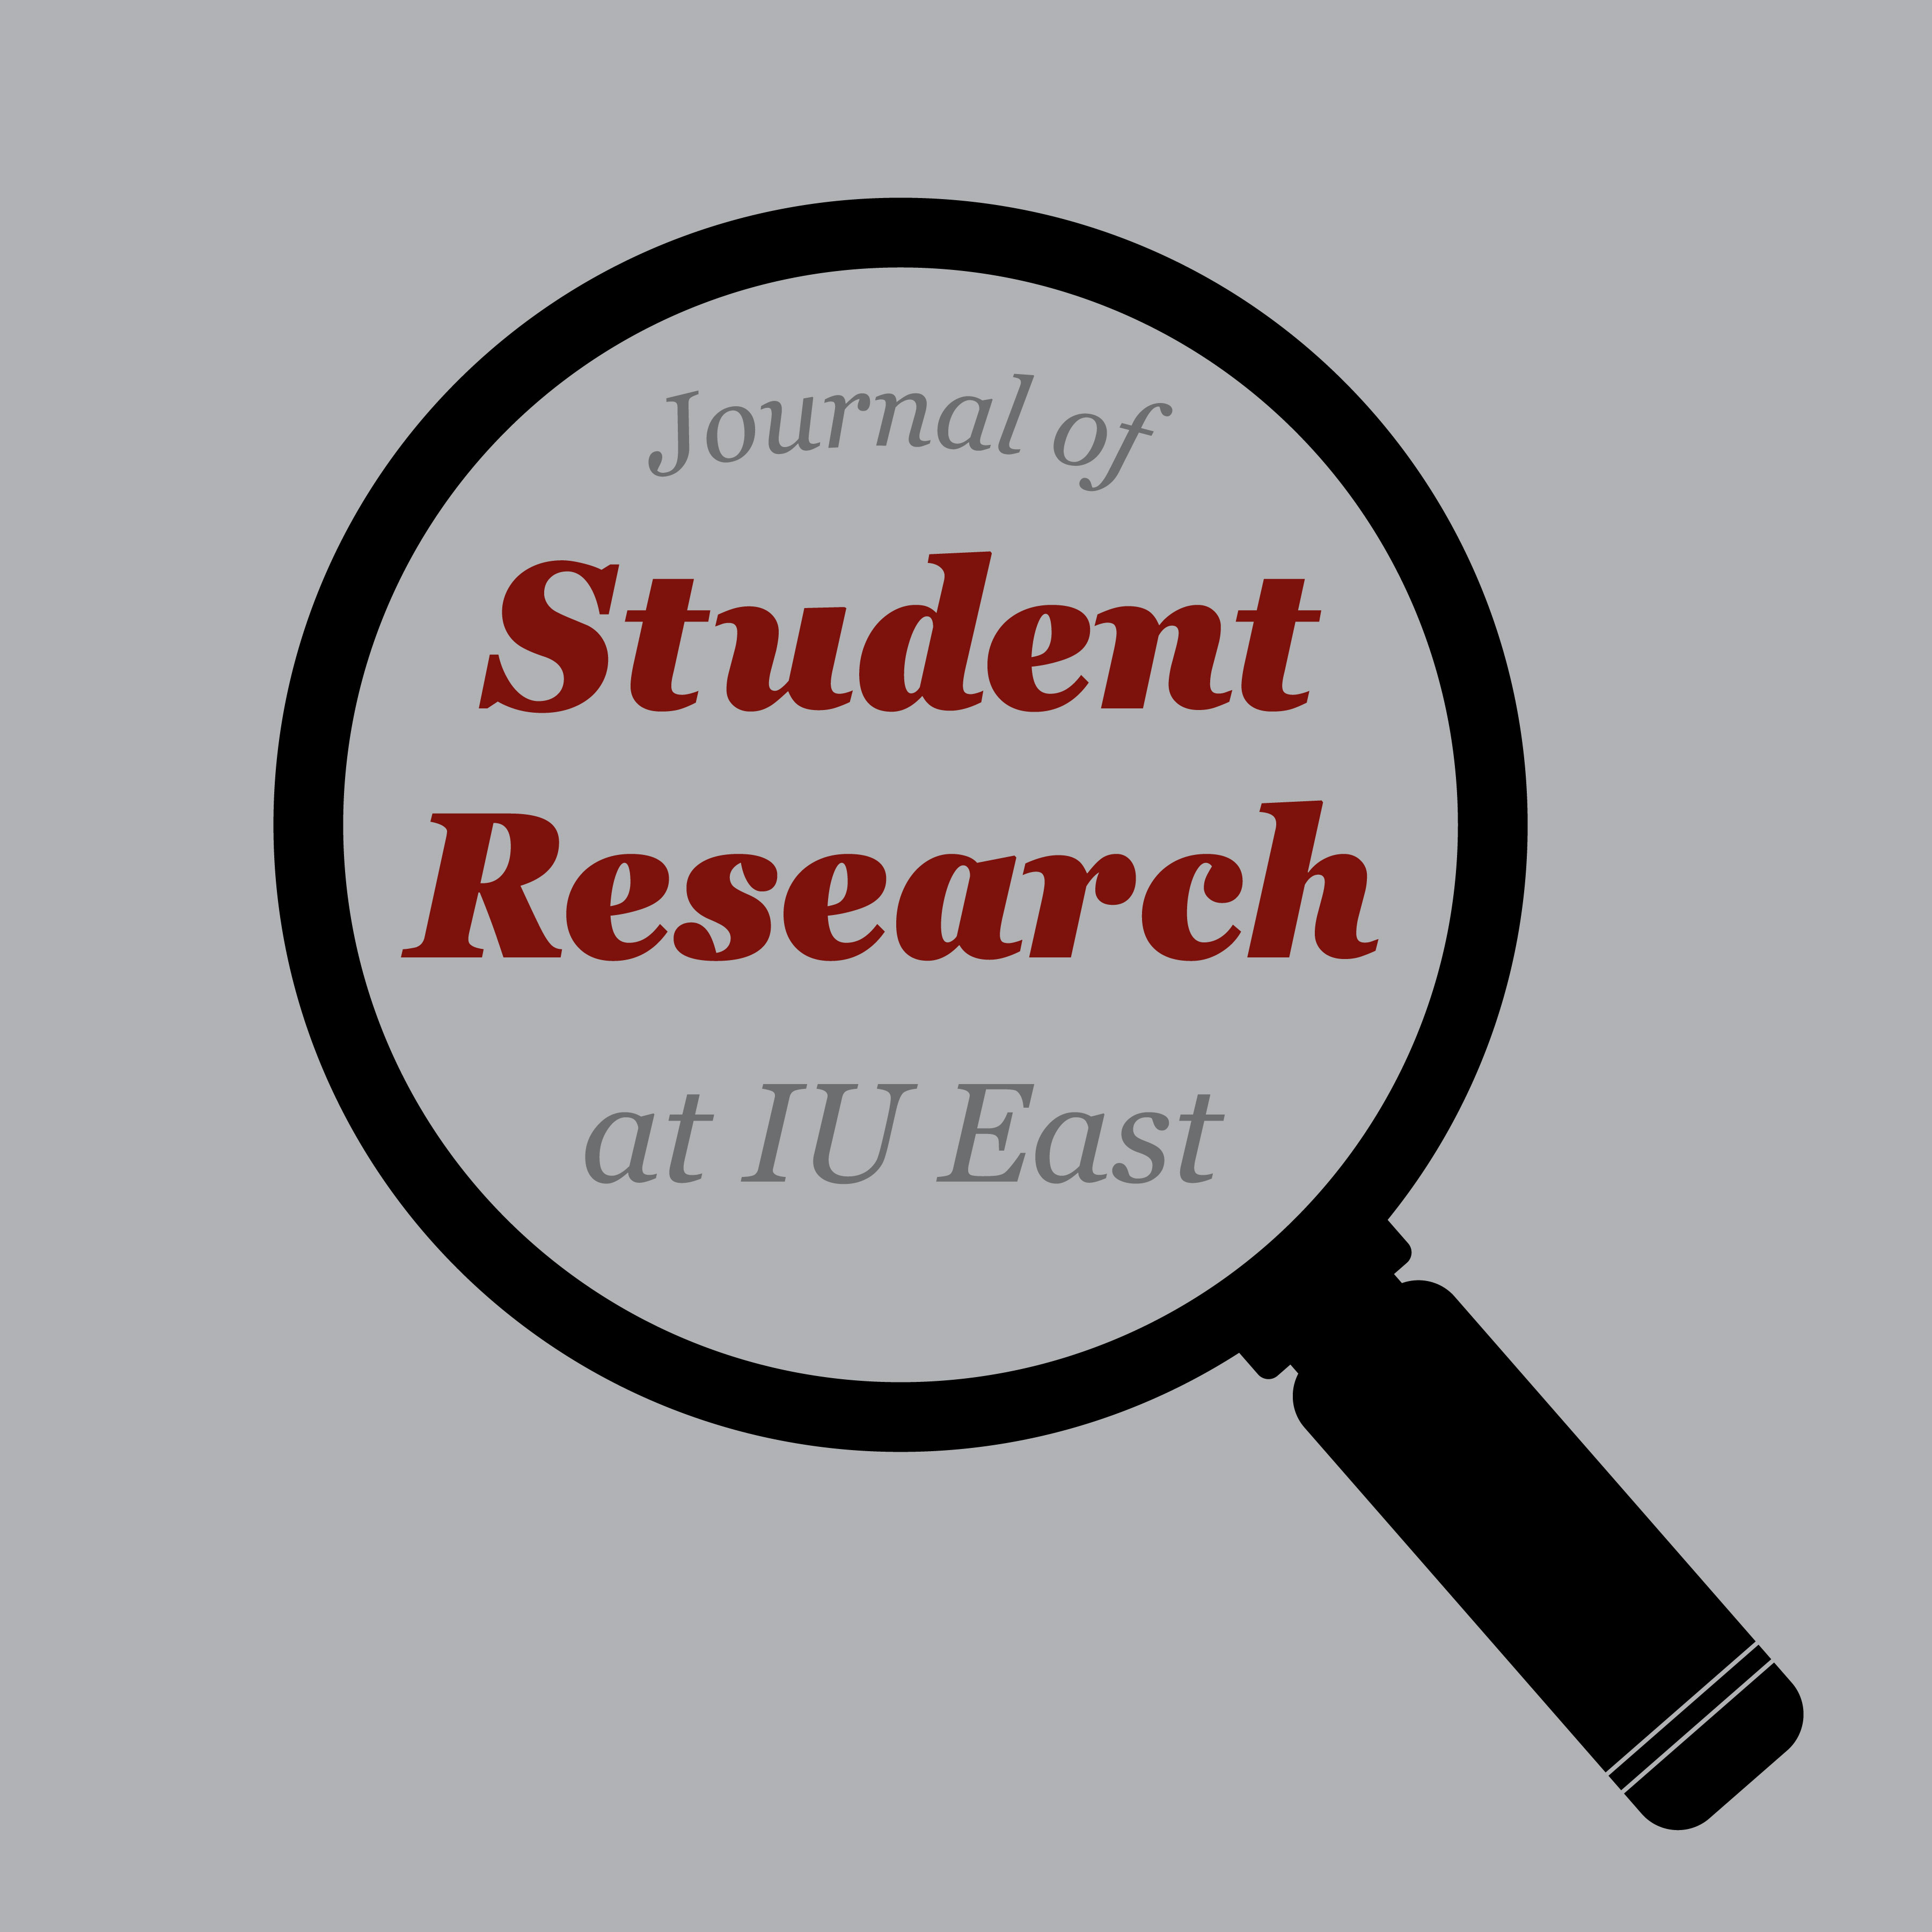 Journal of Student Research logo